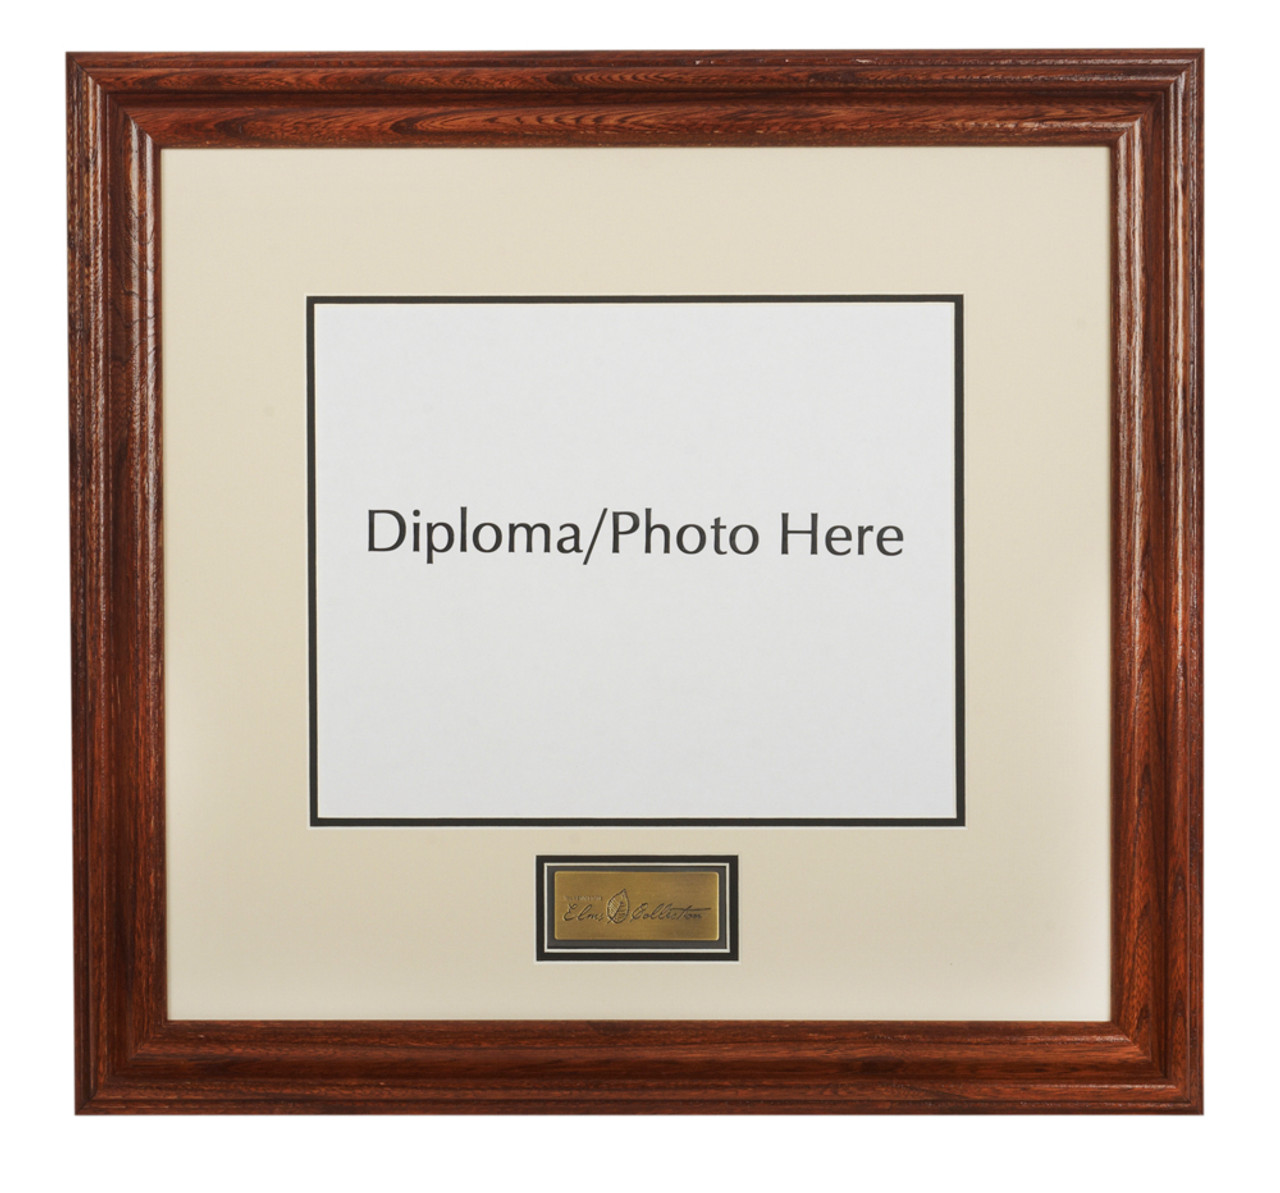 Penn State Elms Diploma Frame - The Penn State Elms Collection